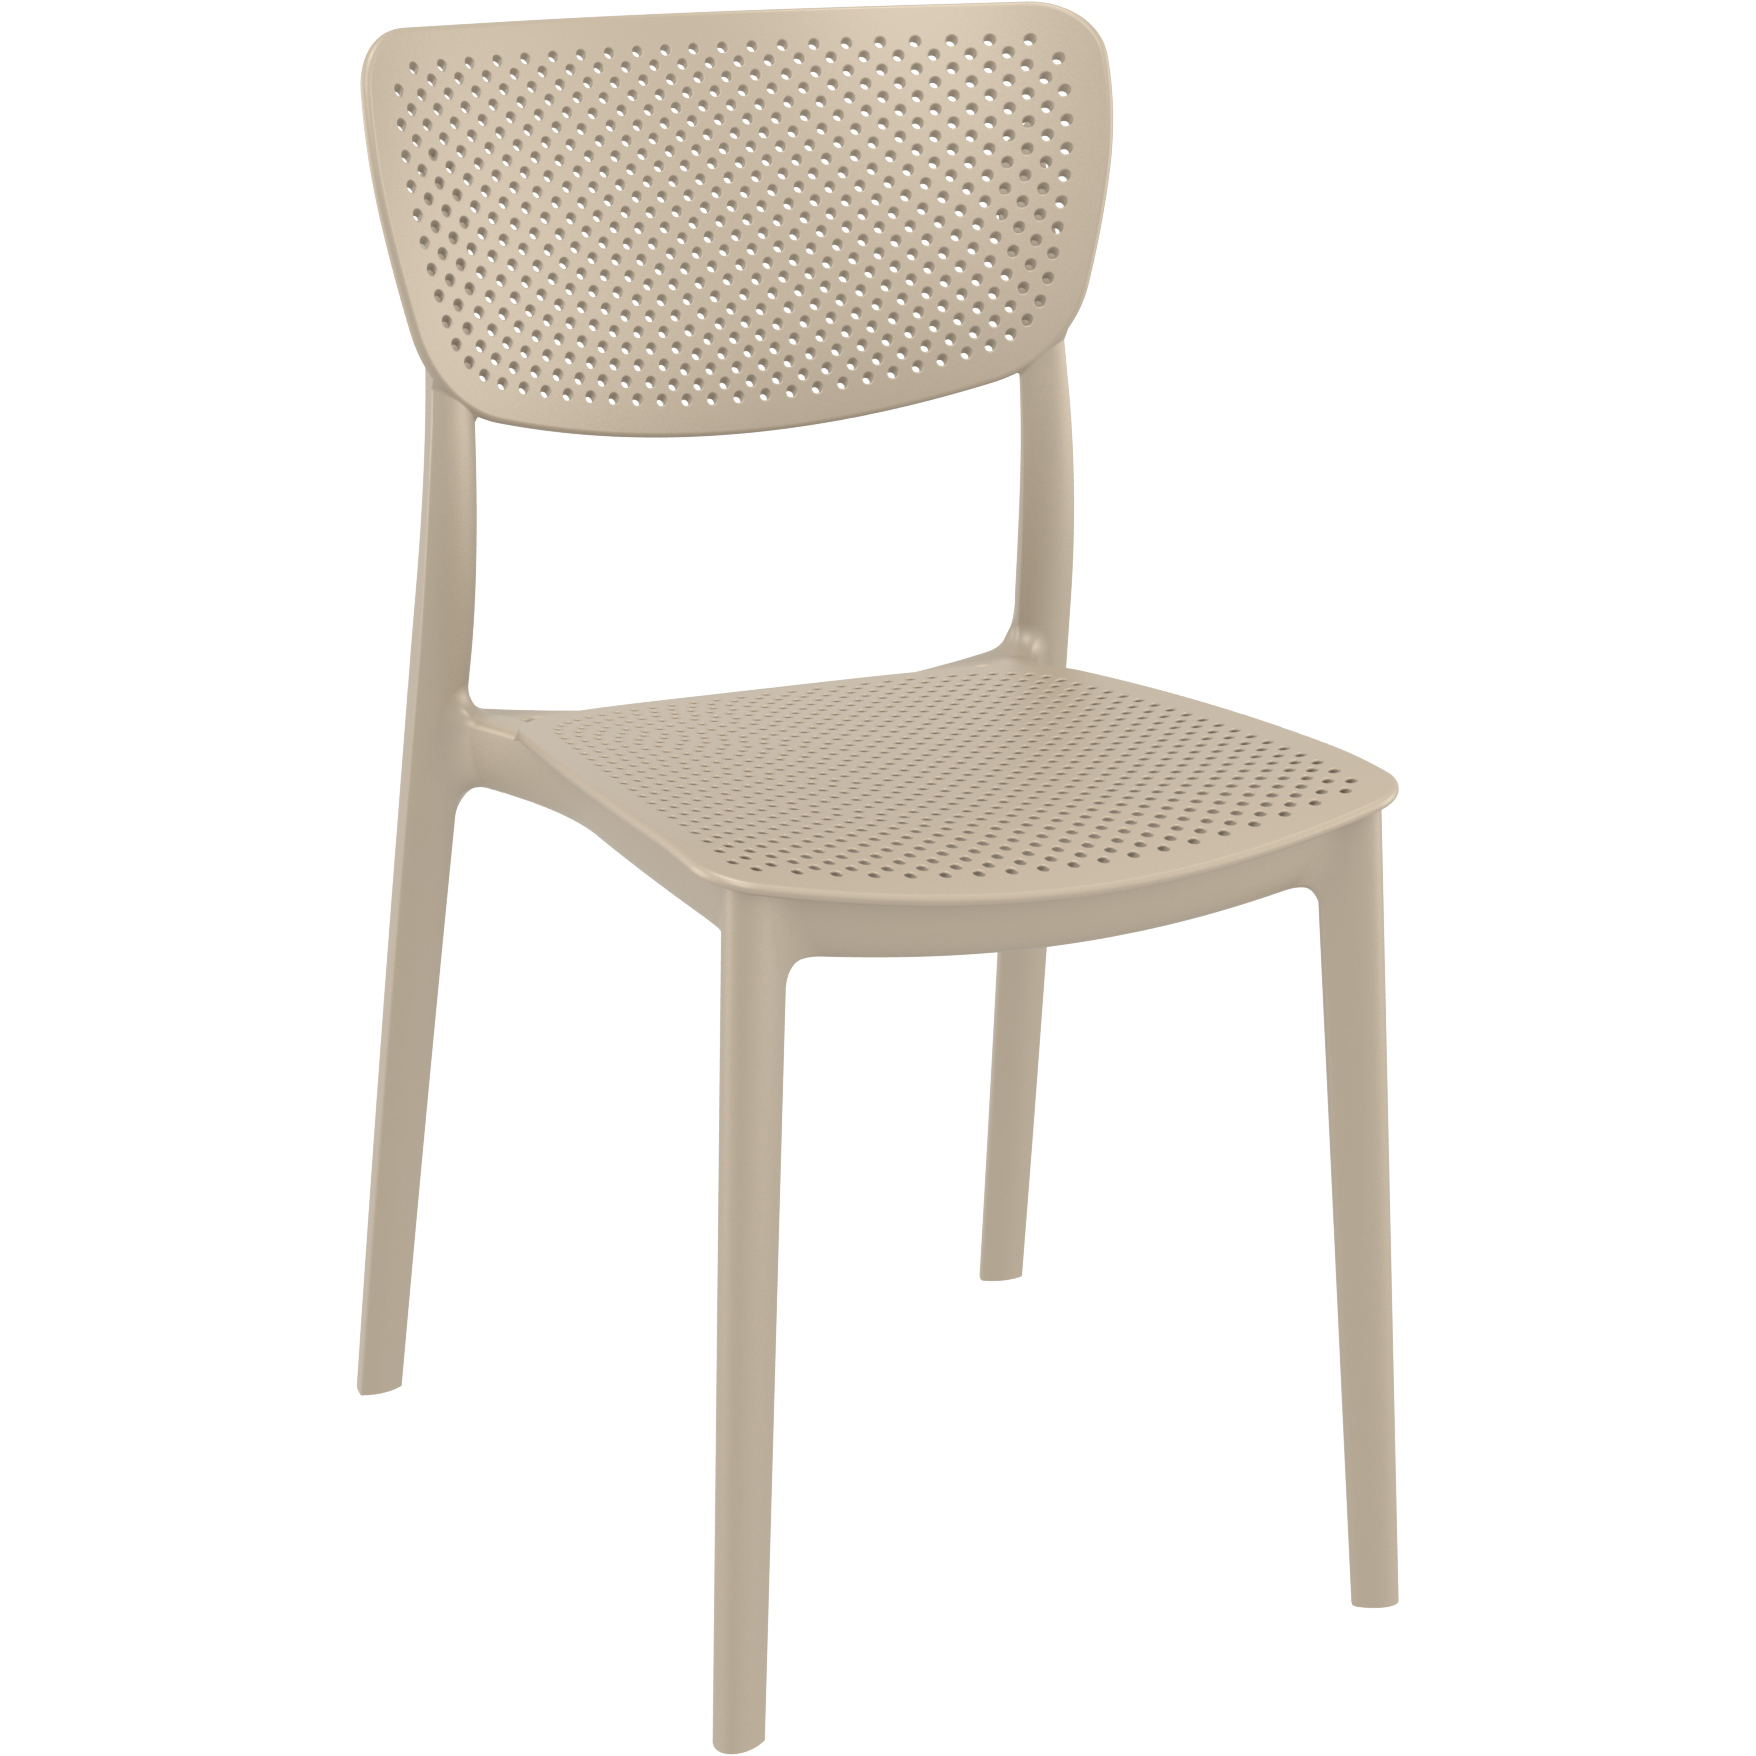 Lucy Chair - Taupe